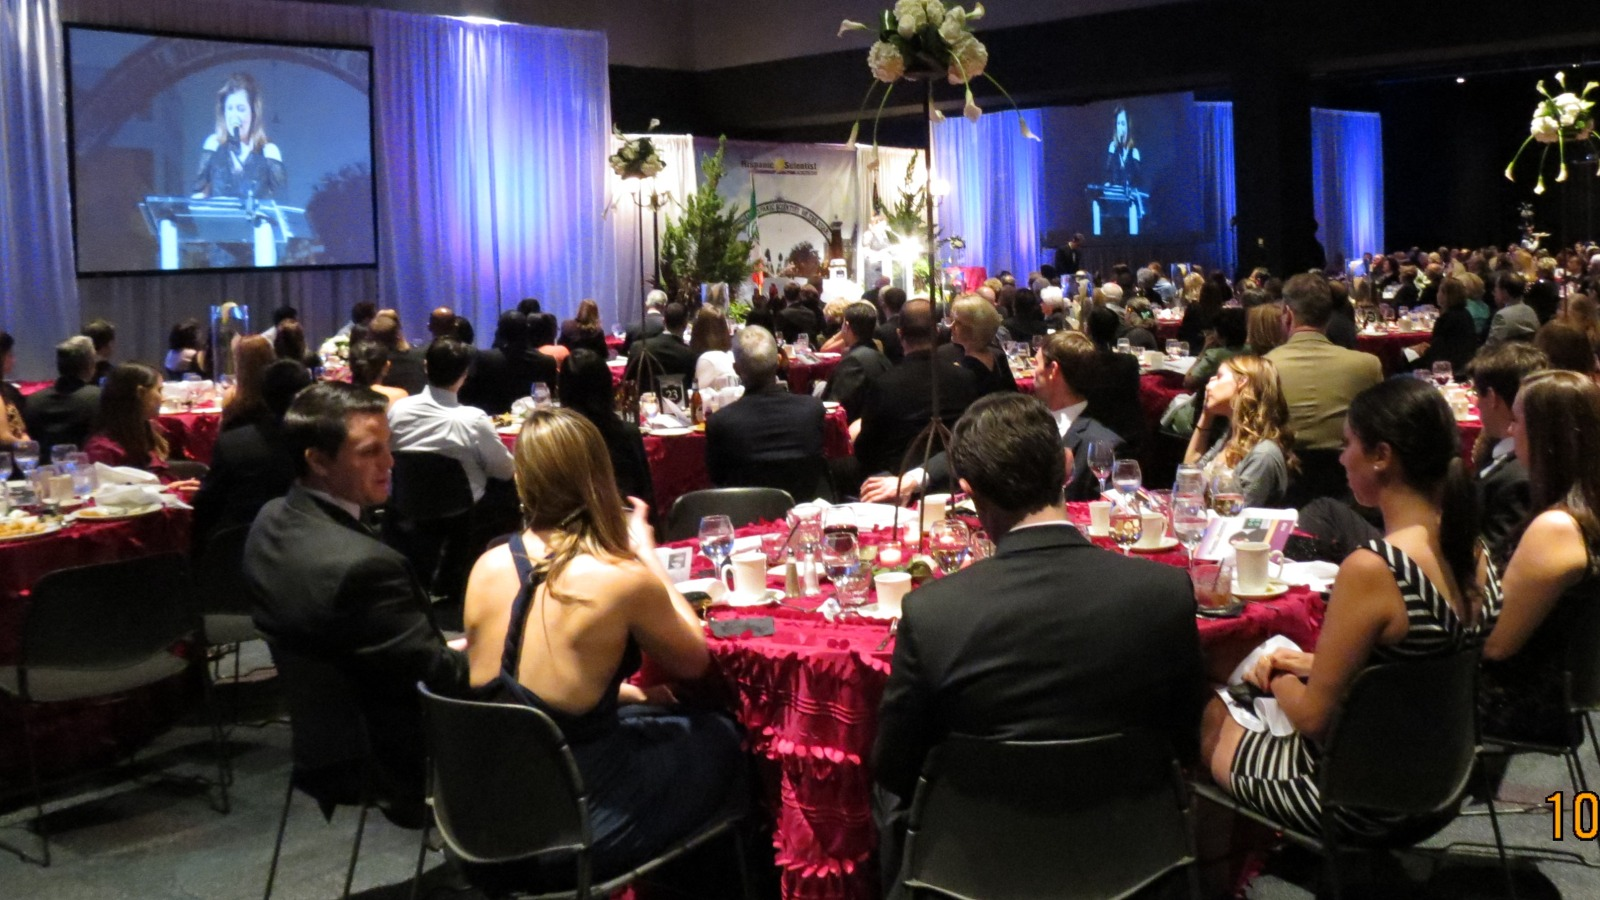 Fundraisers & Charity Events   Gala Dinners - Live Auctions - Luncheons  Tampa | St. Petersburg | Orlando